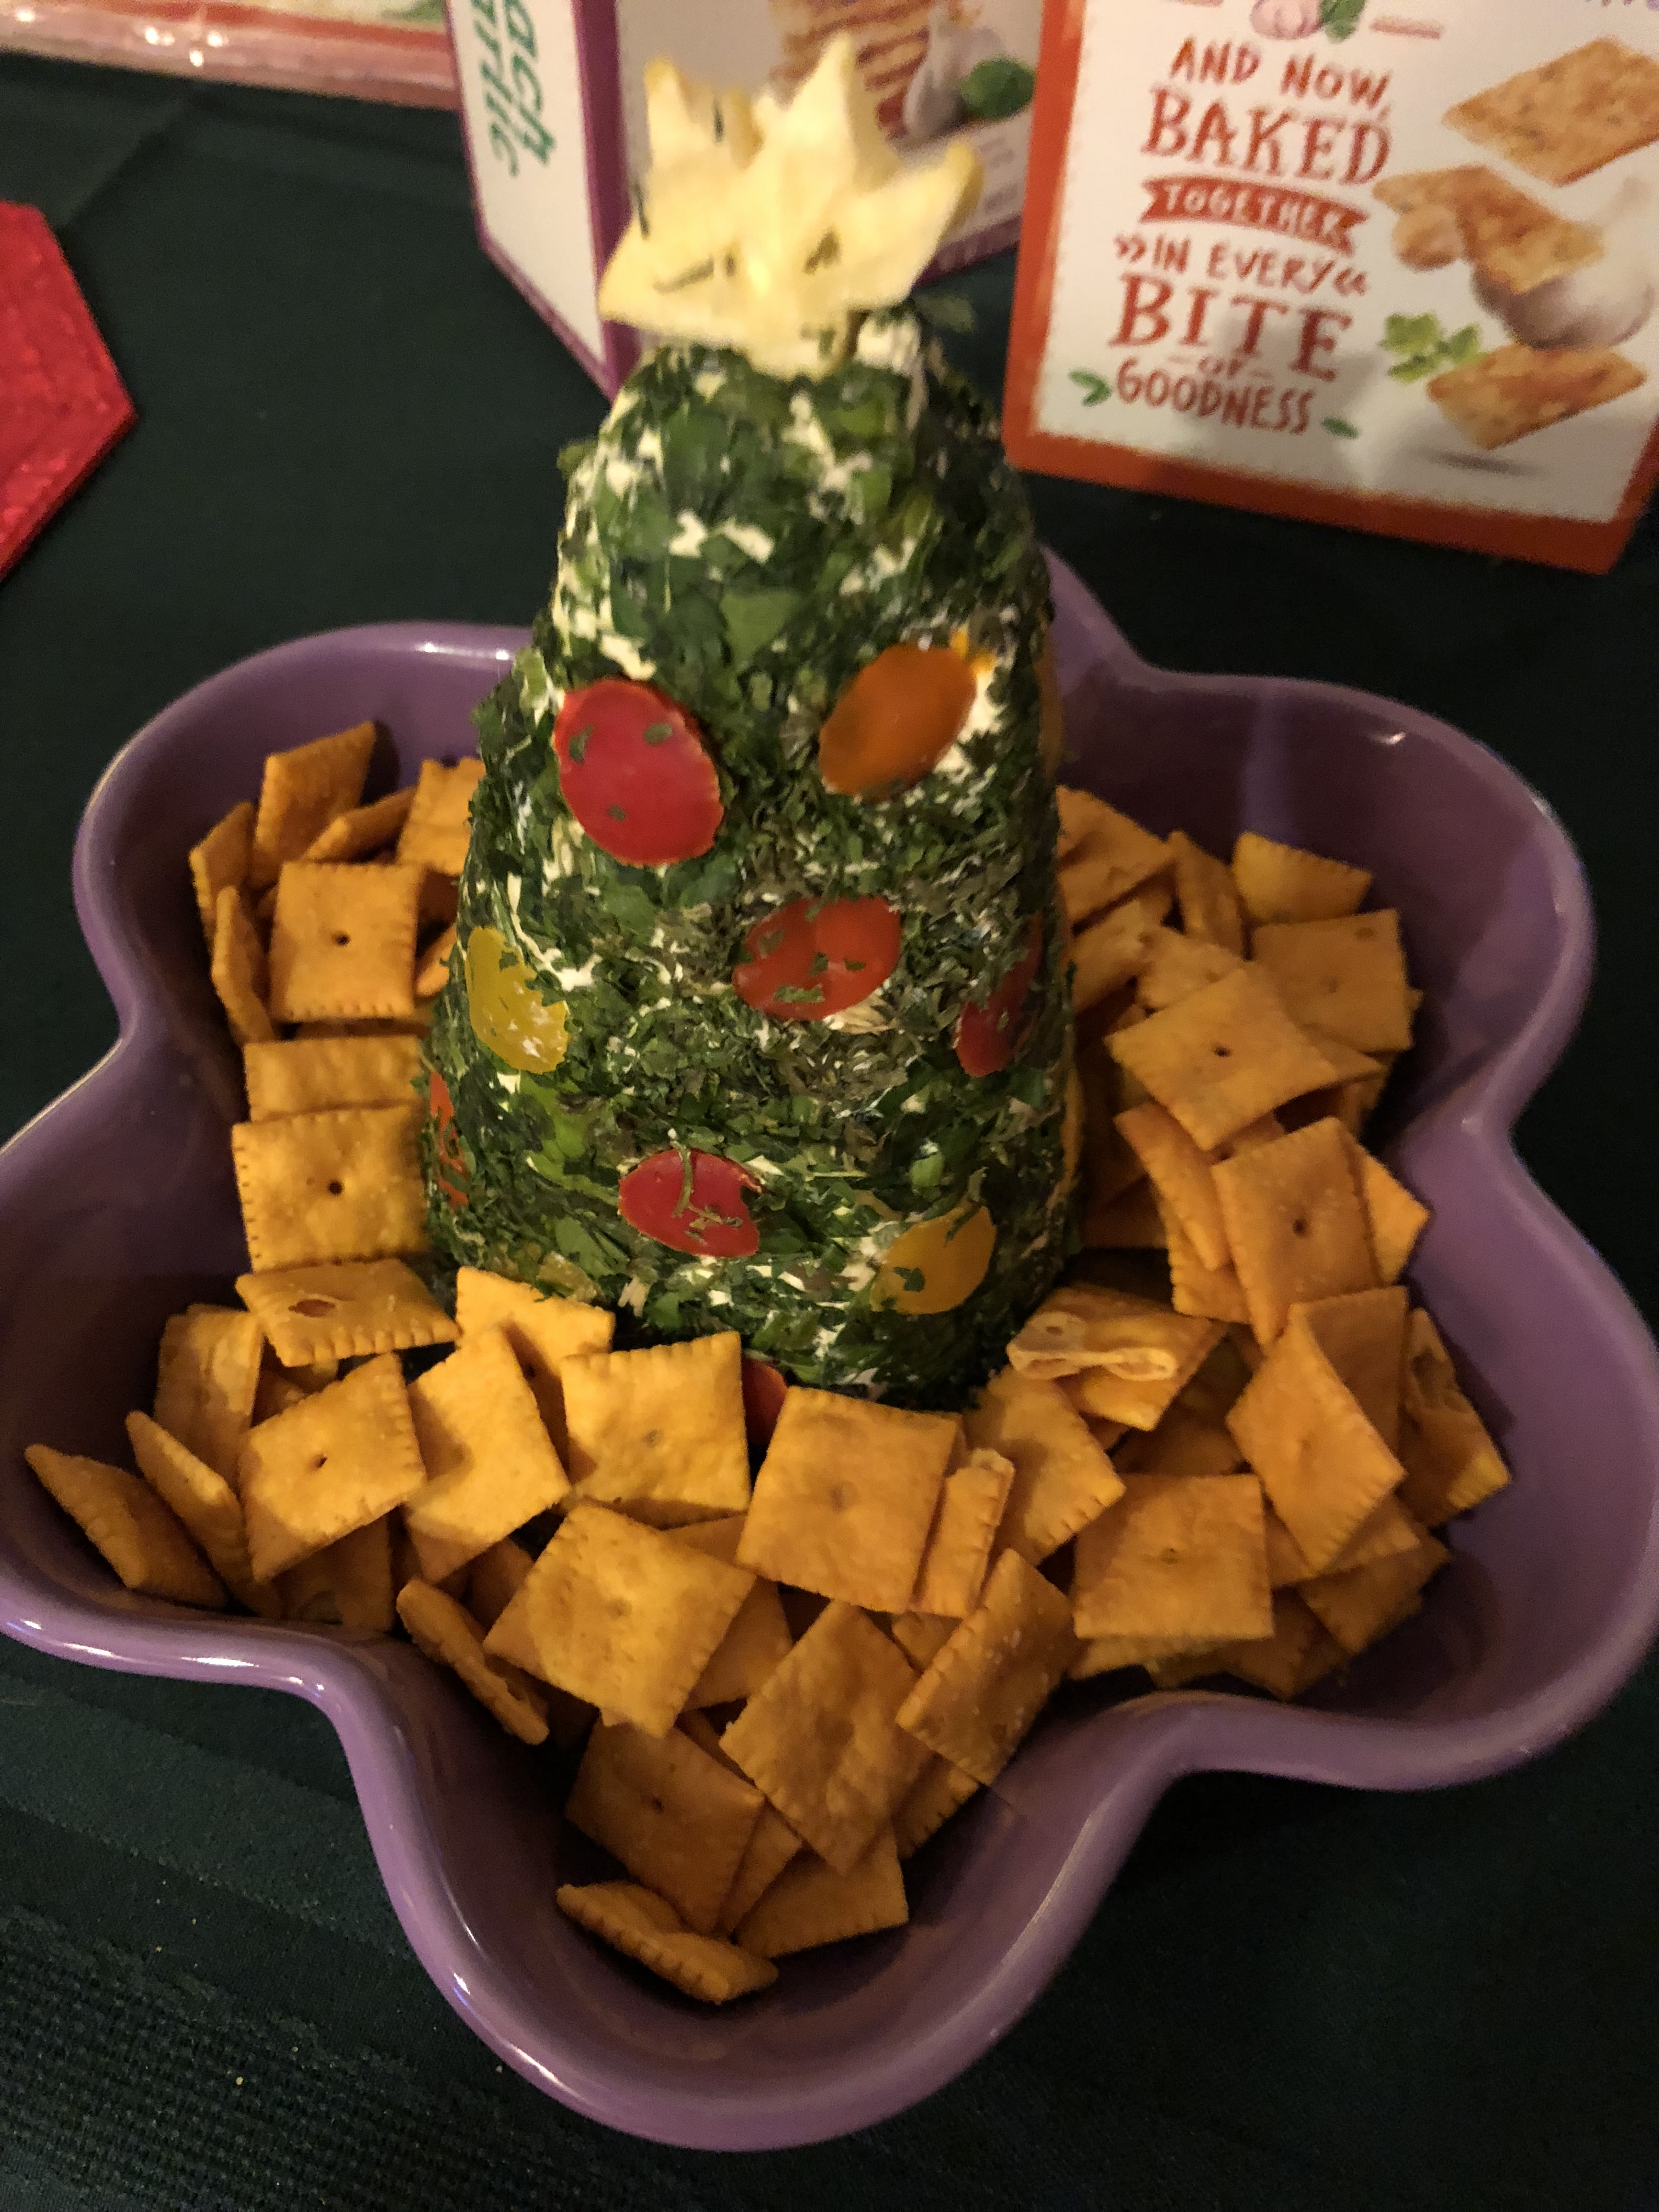 Cream Cheese, Havarti, and Parmesan Herbed Christmas Tree Julie Lowe